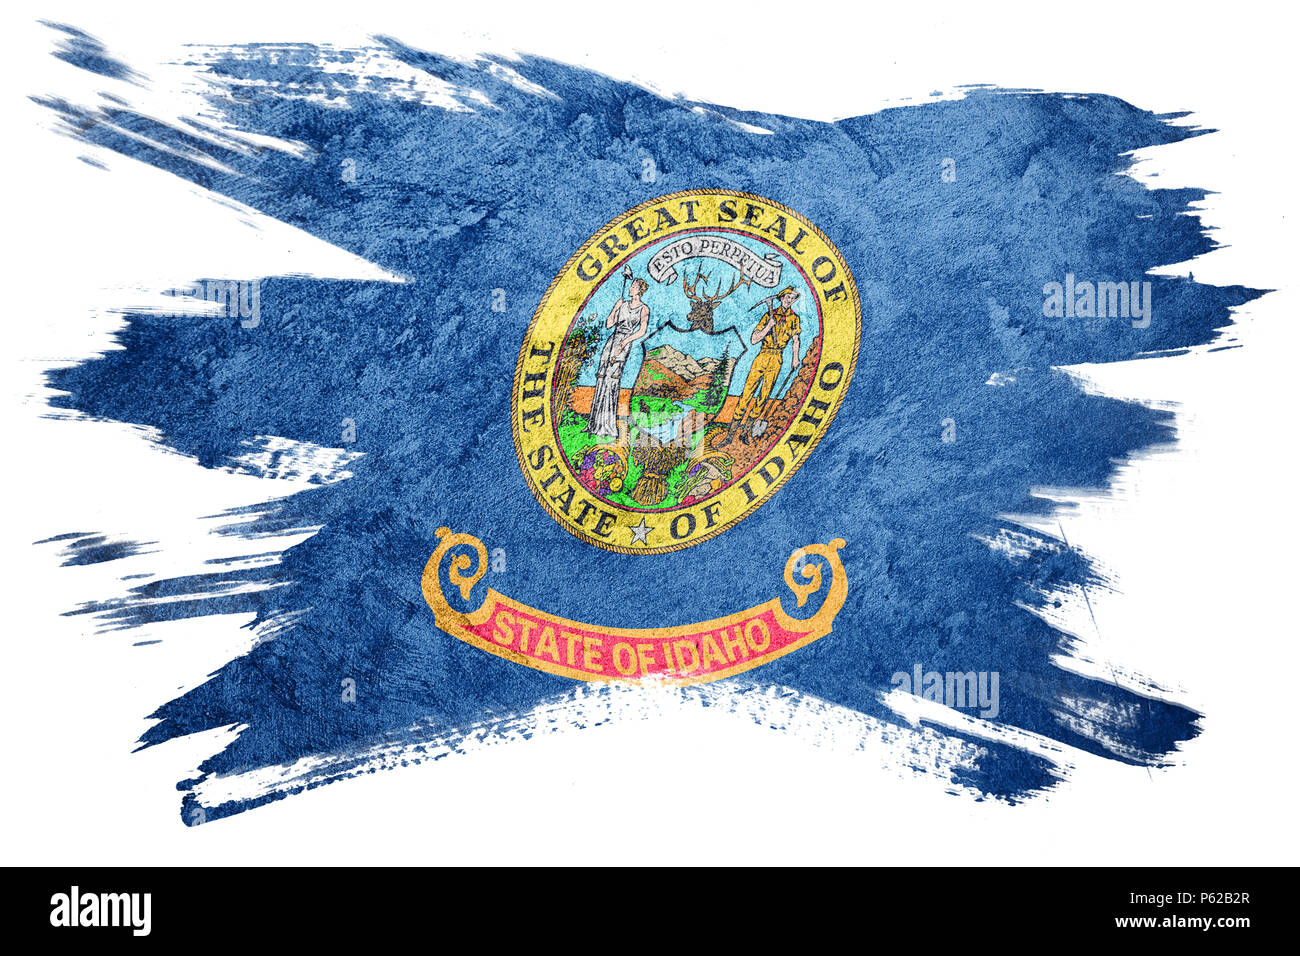 Grunge Idaho state flag. Idaho flag brush stroke. - Stock Image